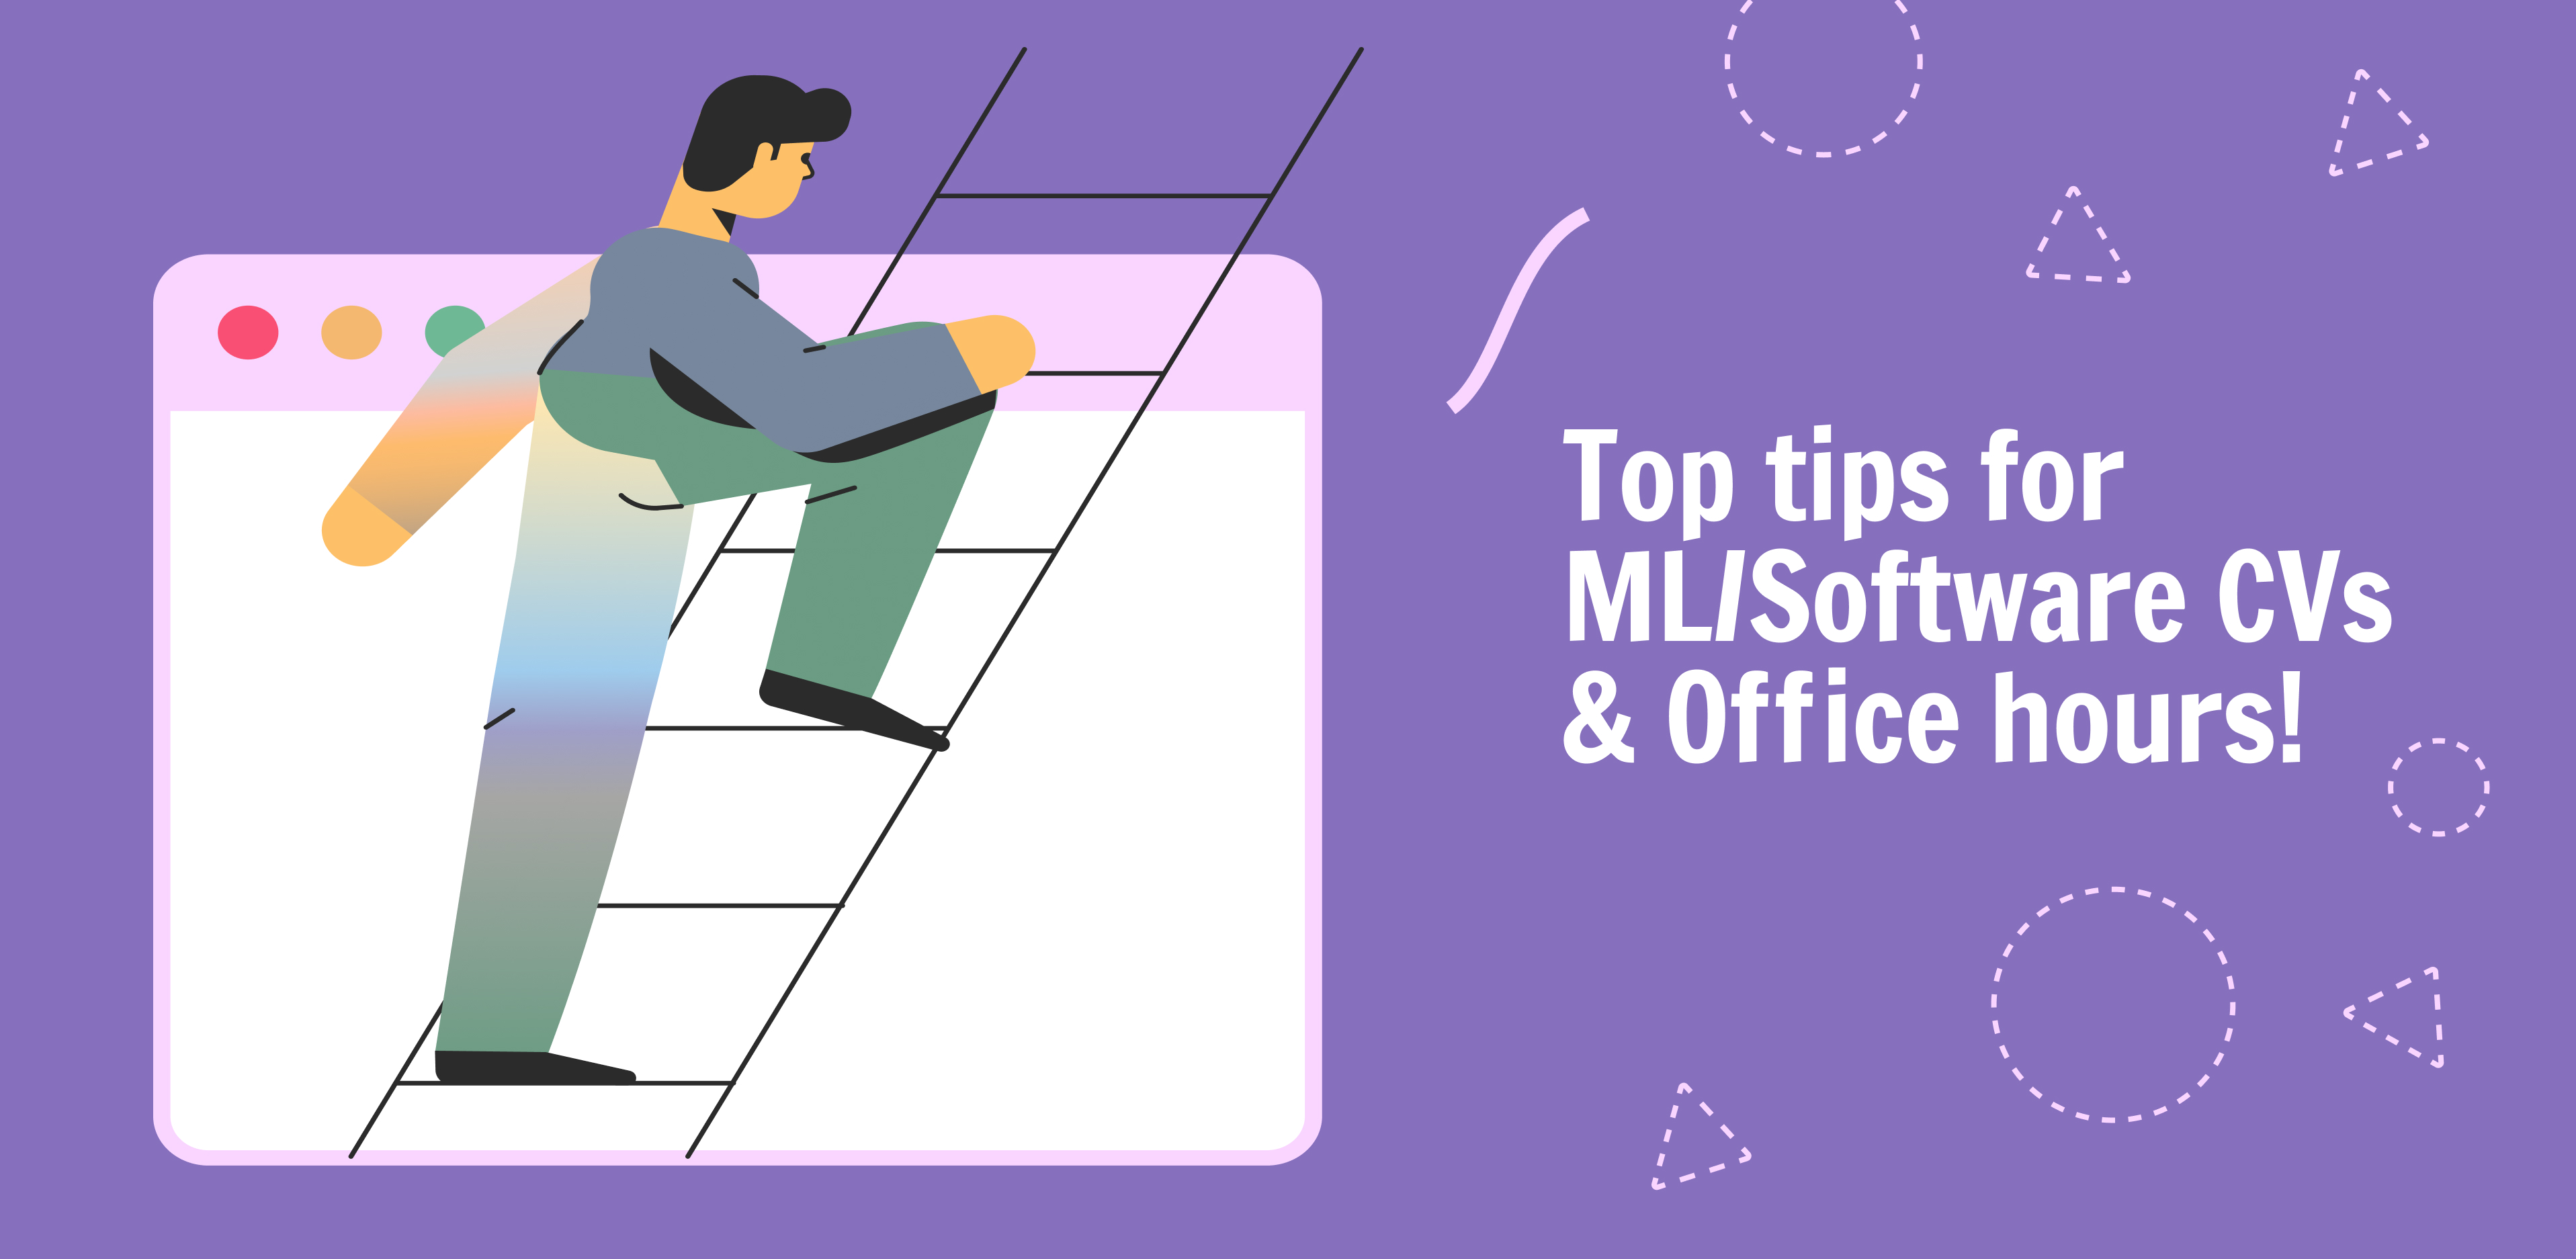 Top tips for ML/Software CV –image